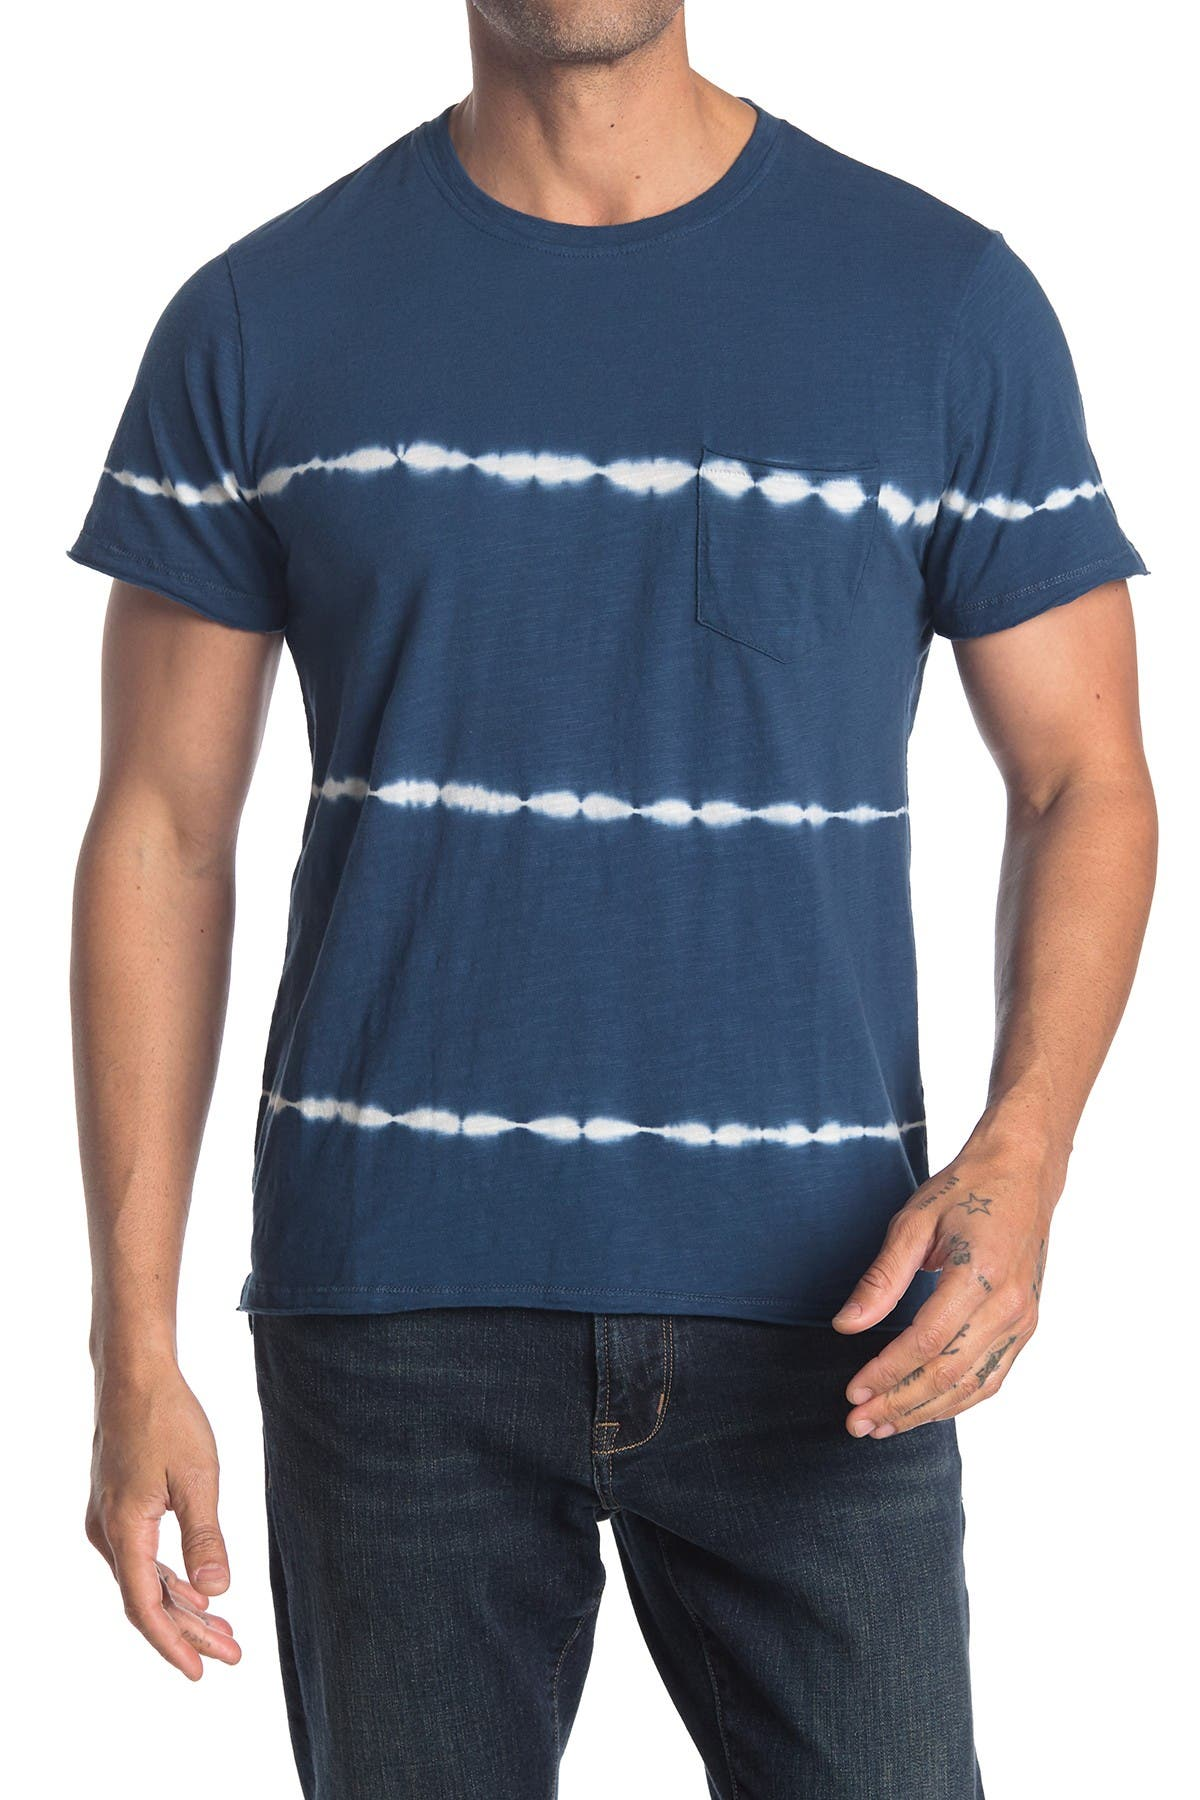 Image of Sovereign Code Palmetto T-Shirt